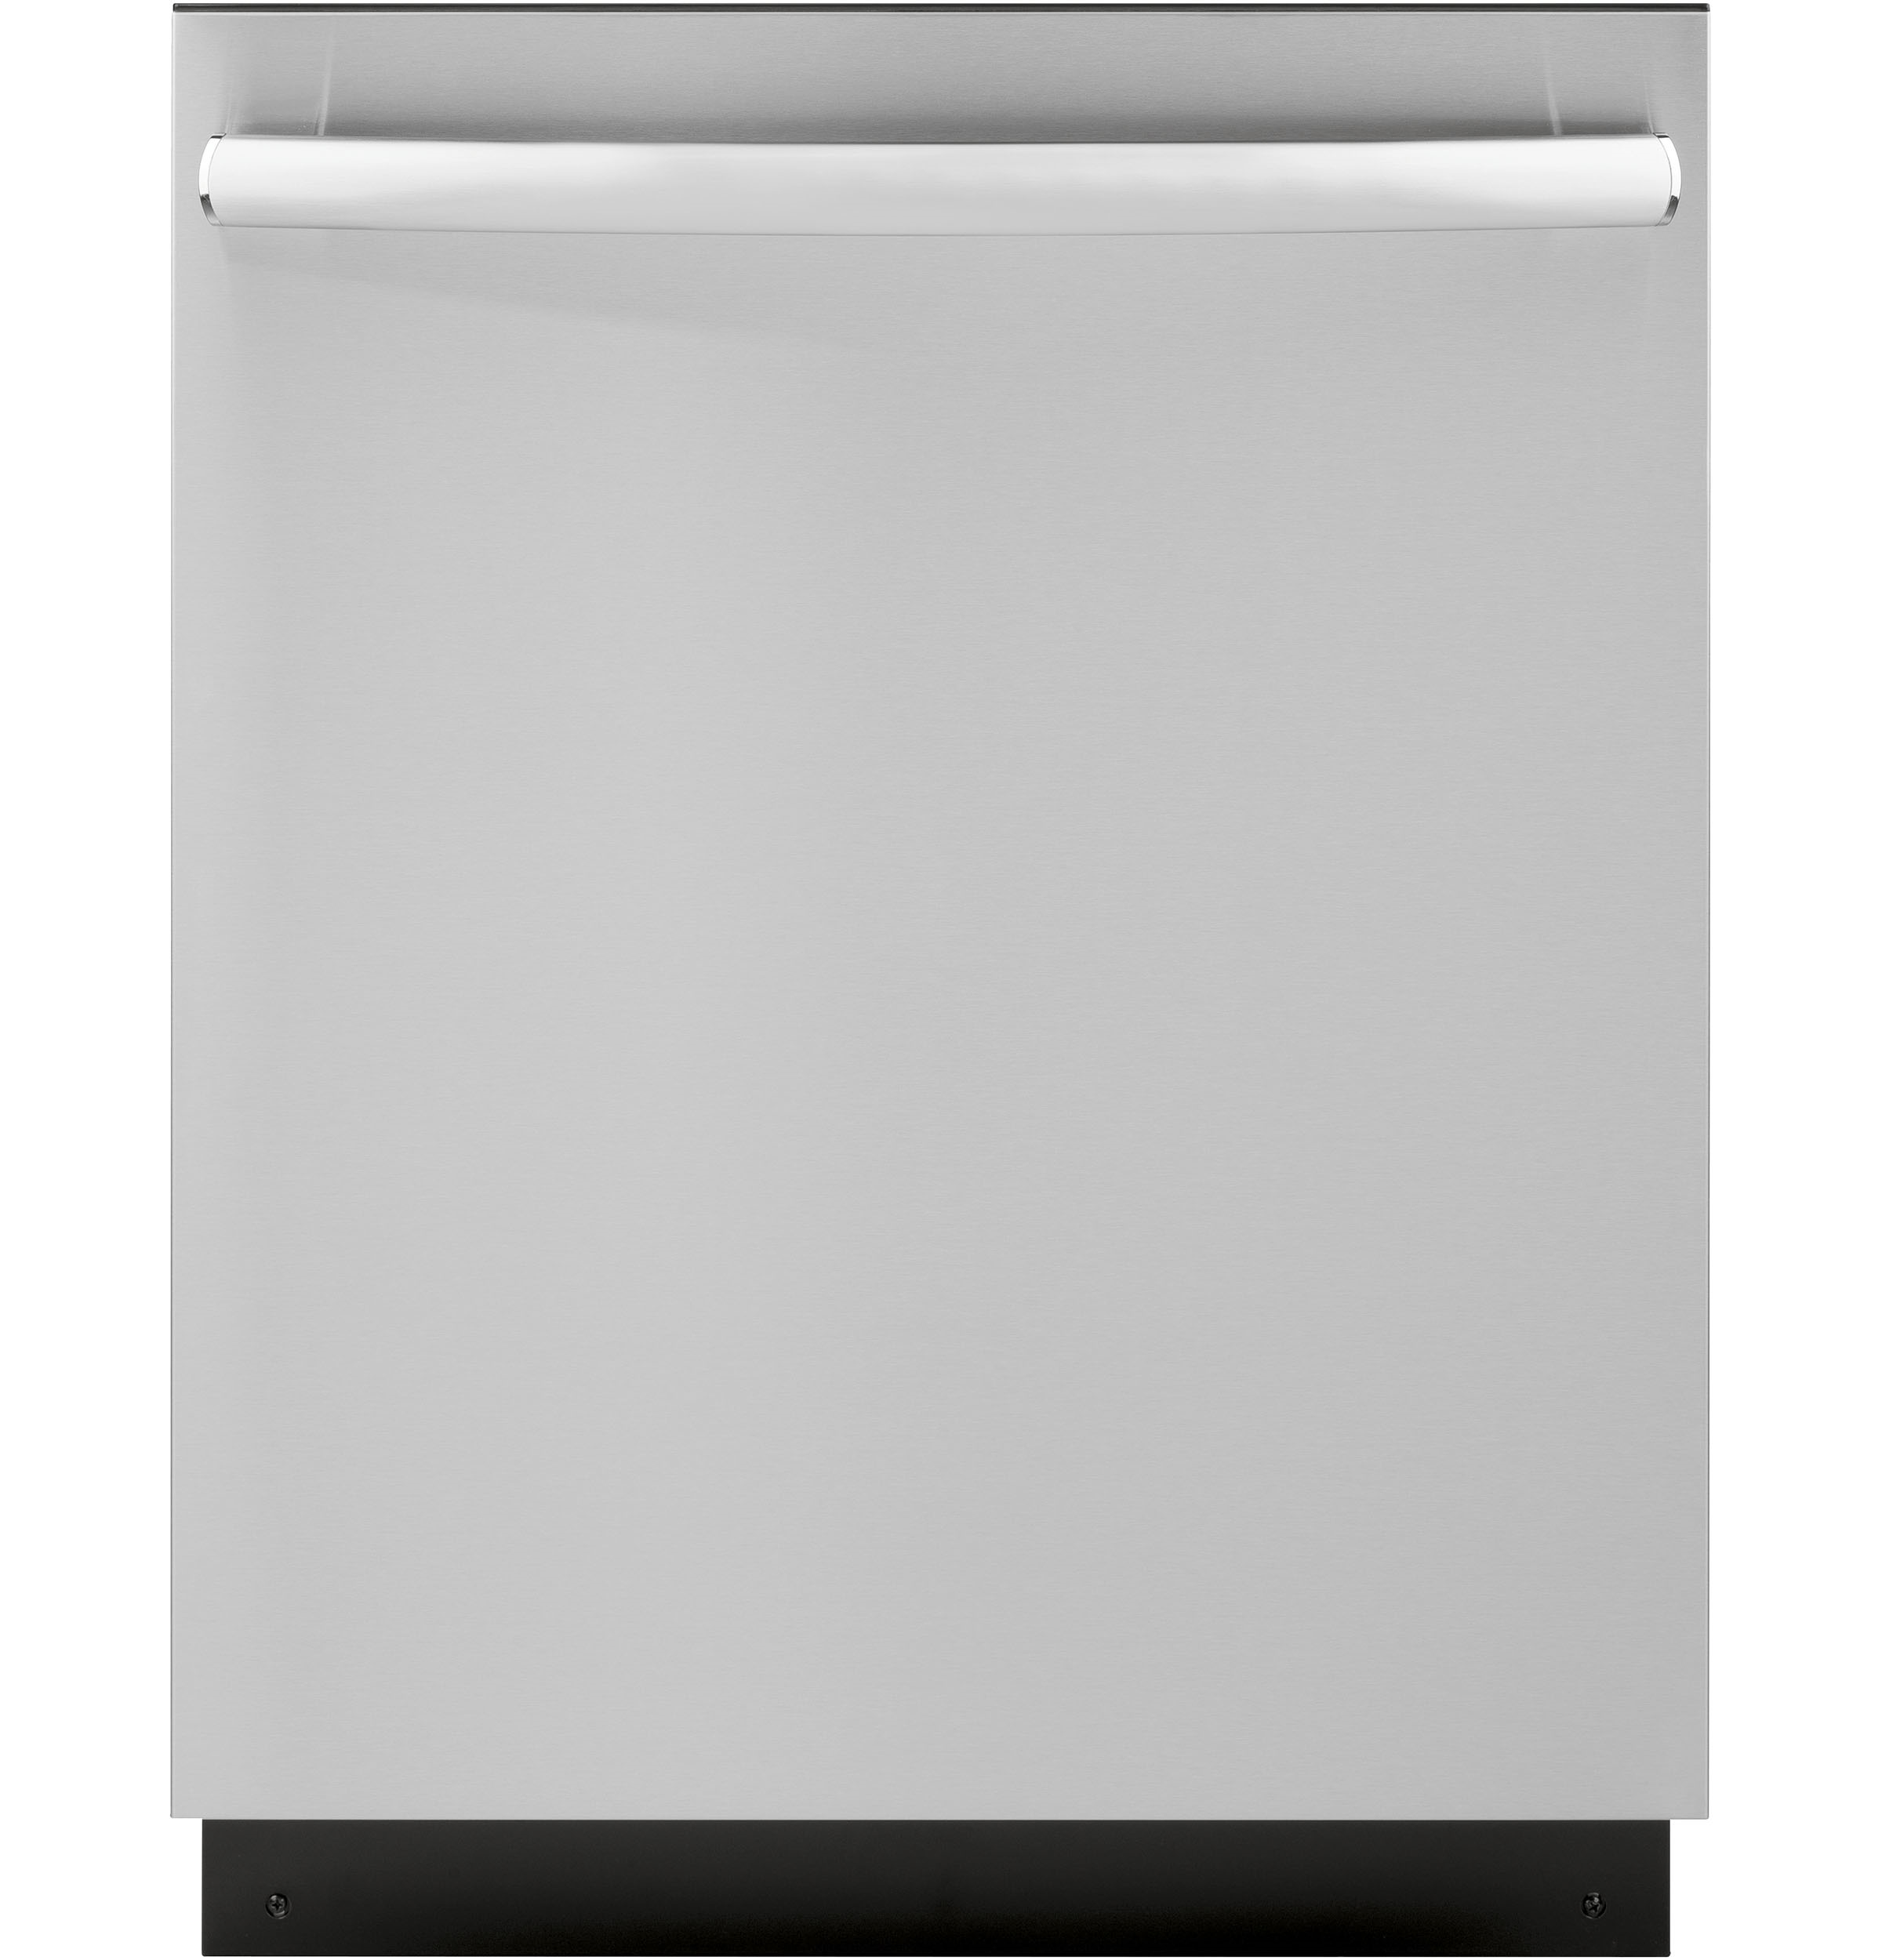 GE GE® ADA Compliant Stainless Steel Interior Dishwasher with Sanitize Cycle